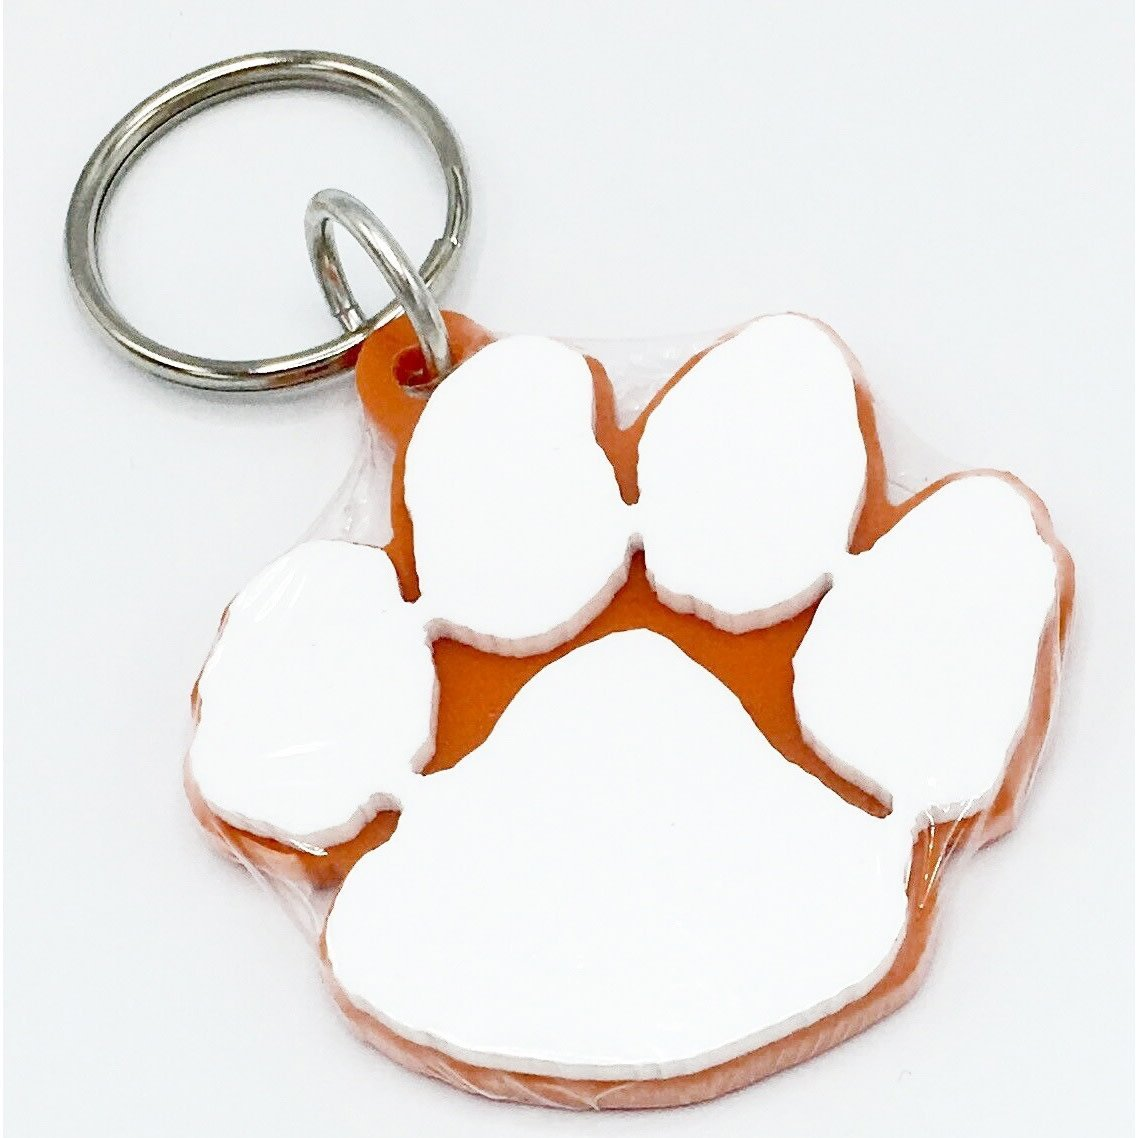 Die Cut Paw Keychain - Mr. Knickerbocker